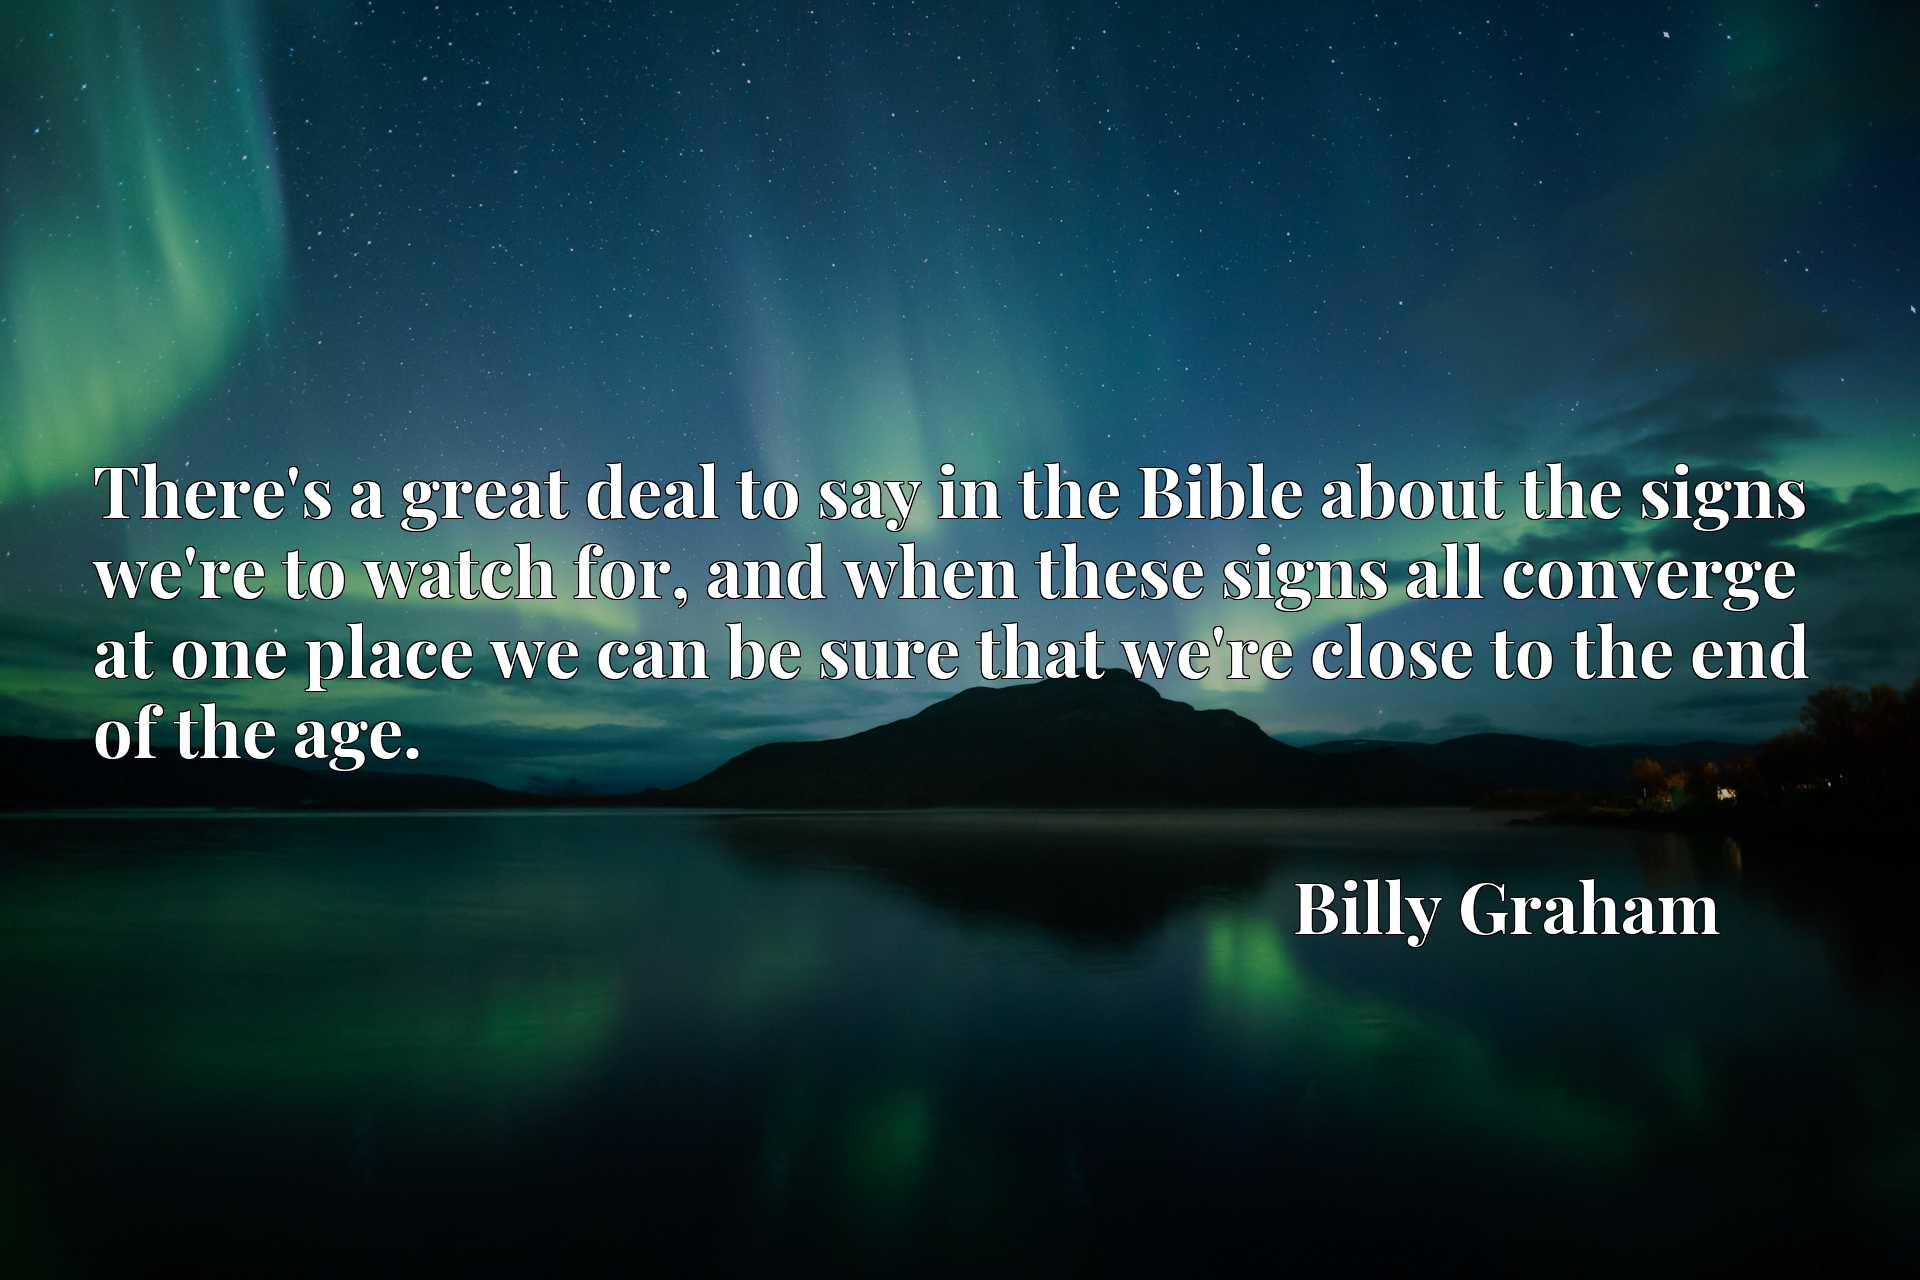 There's a great deal to say in the Bible about the signs we're to watch for, and when these signs all converge at one place we can be sure that we're close to the end of the age.